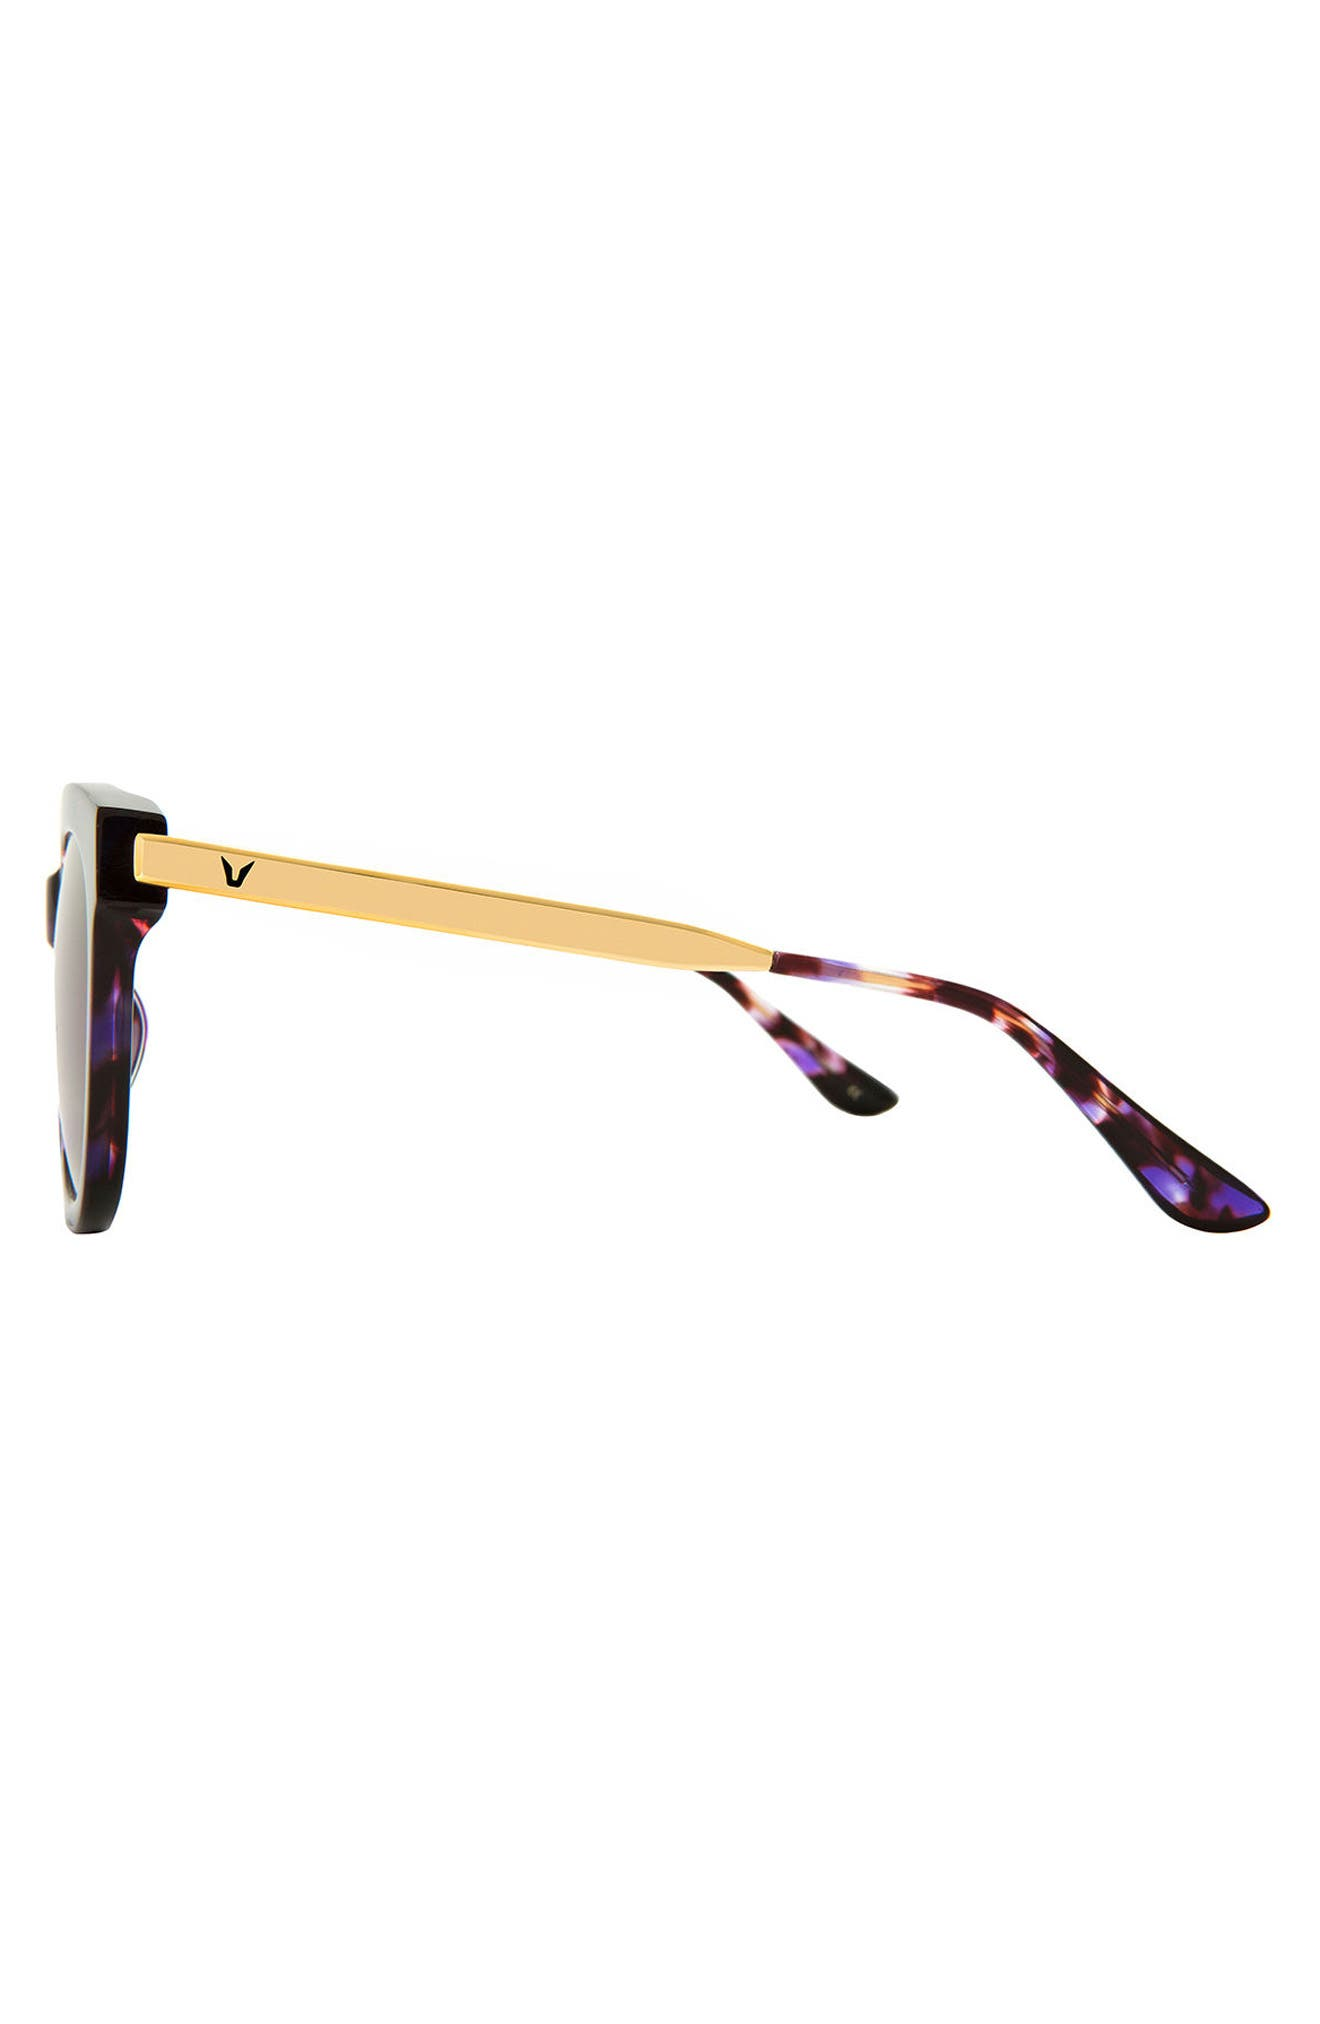 Absente 54mm Sunglasses,                             Alternate thumbnail 11, color,